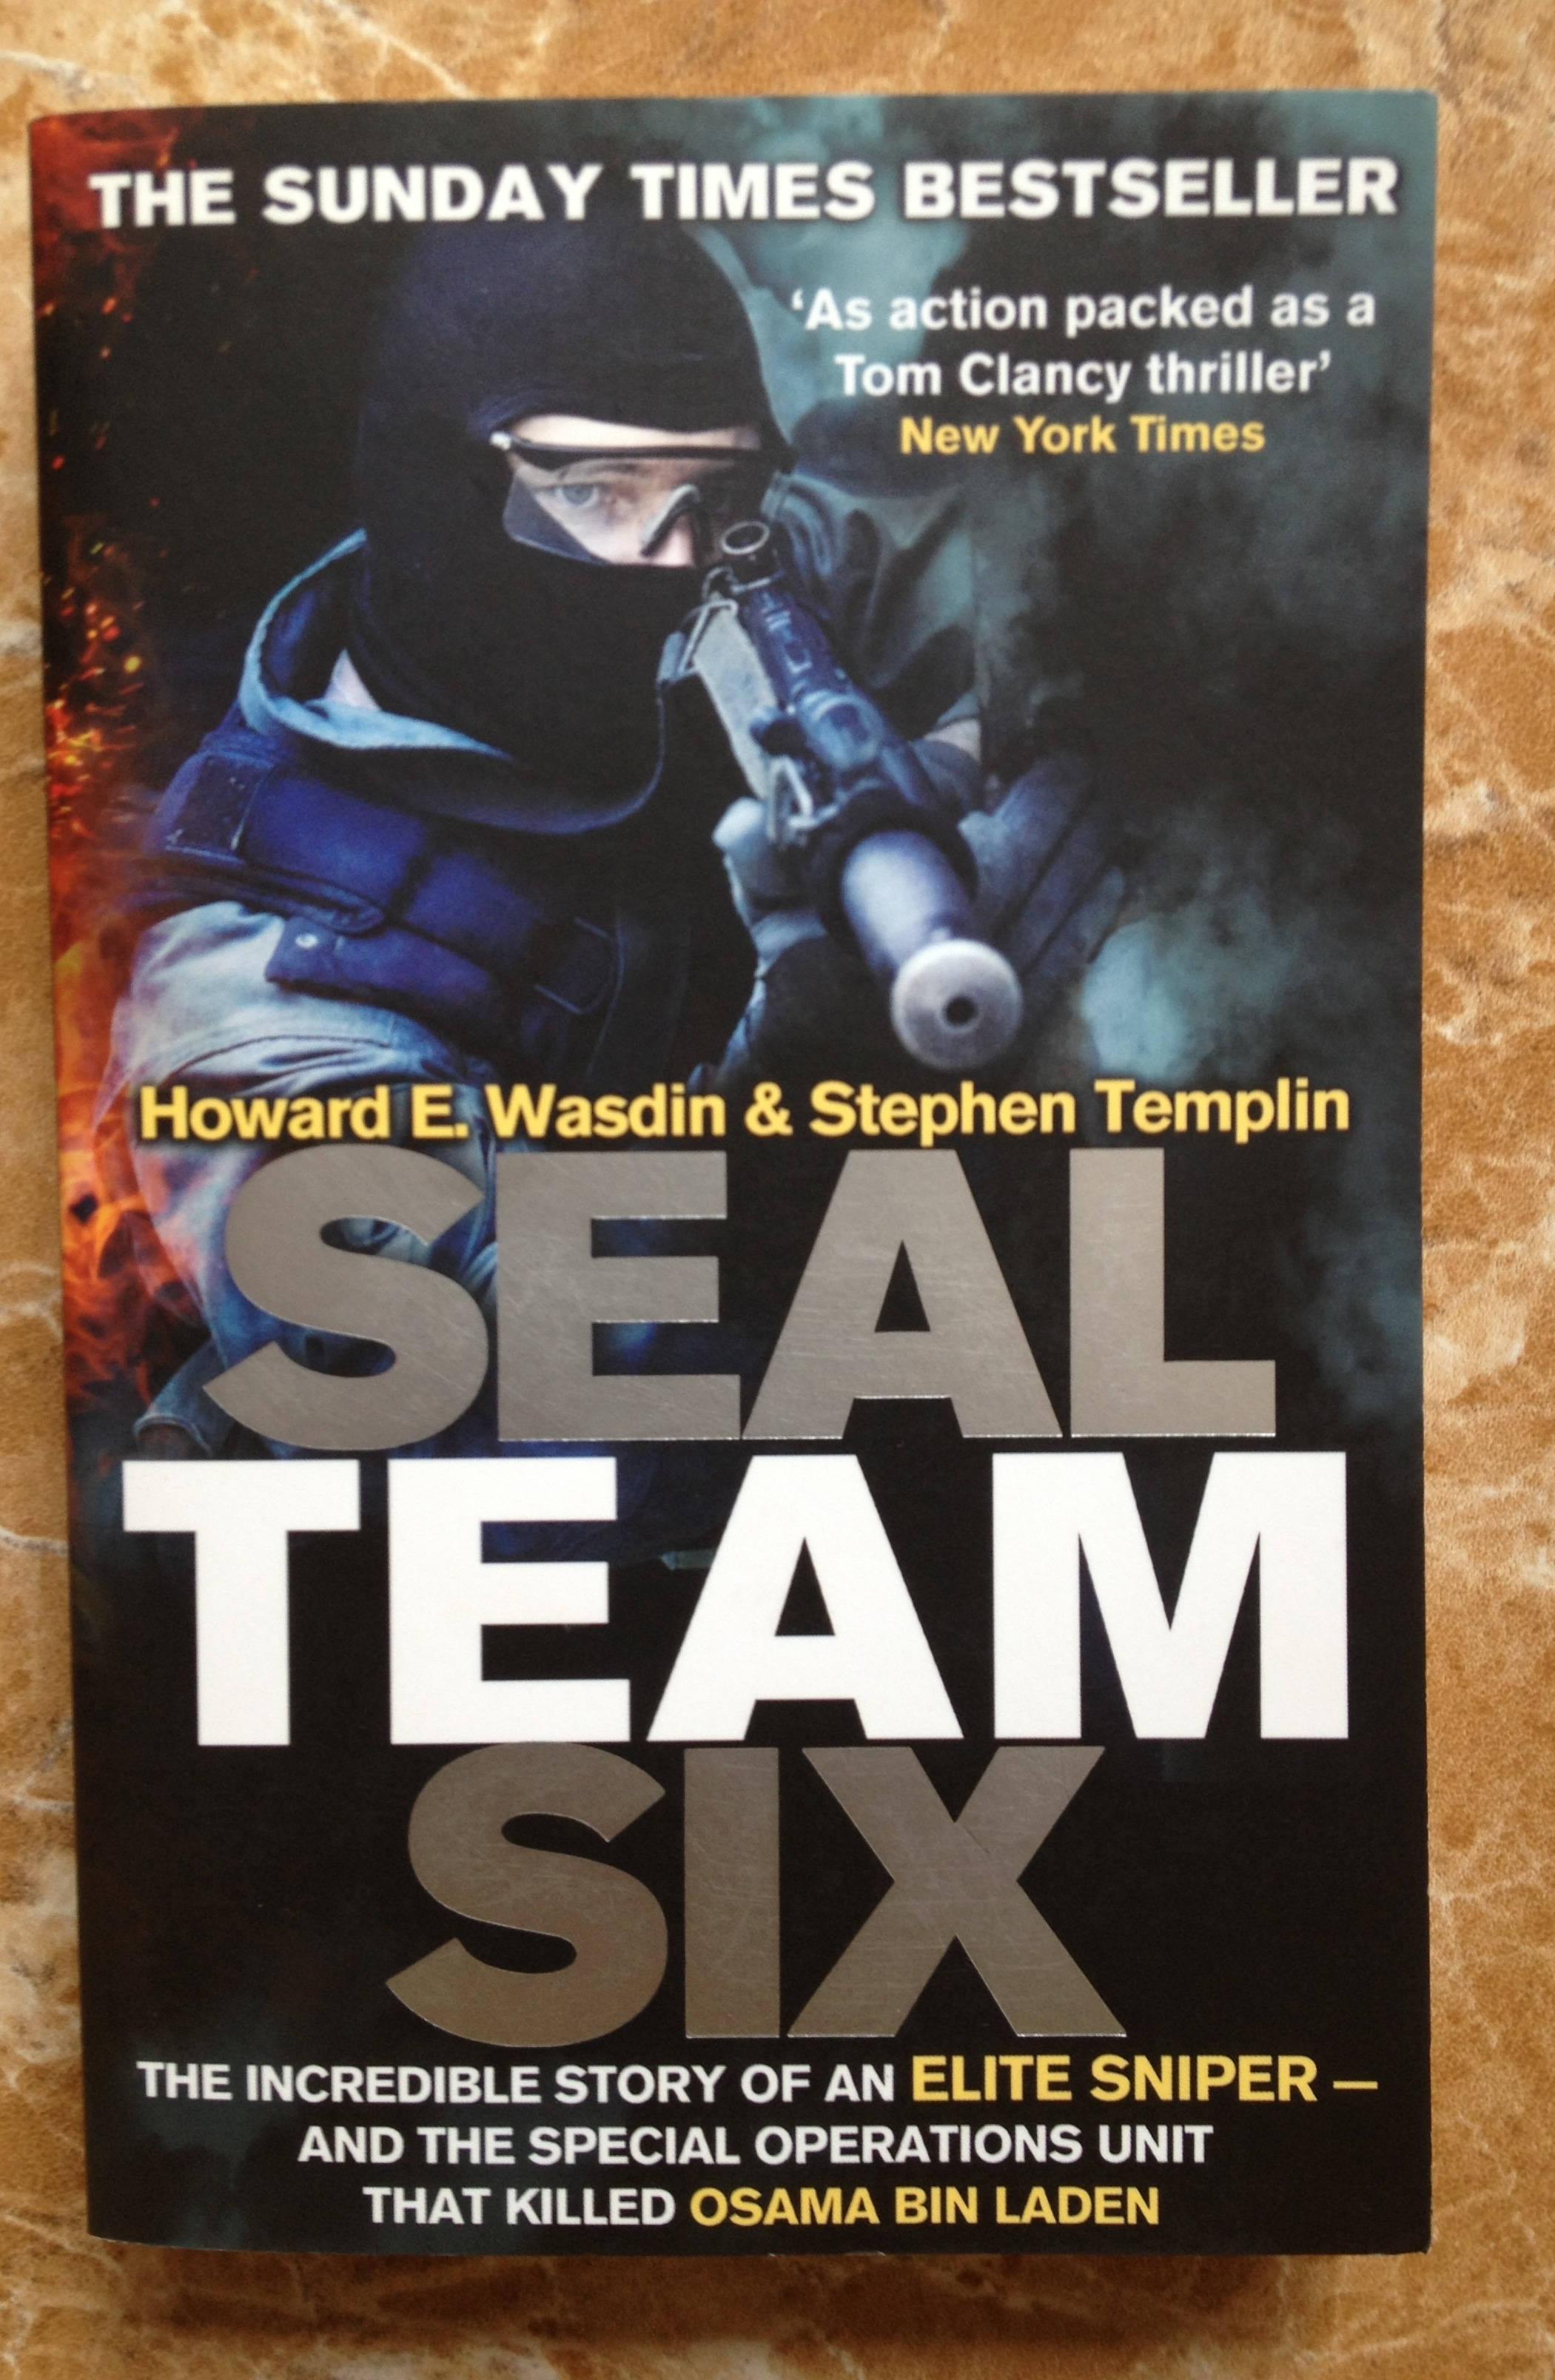 SEAL Team Six by Howard Wasdin and Stephen Templin